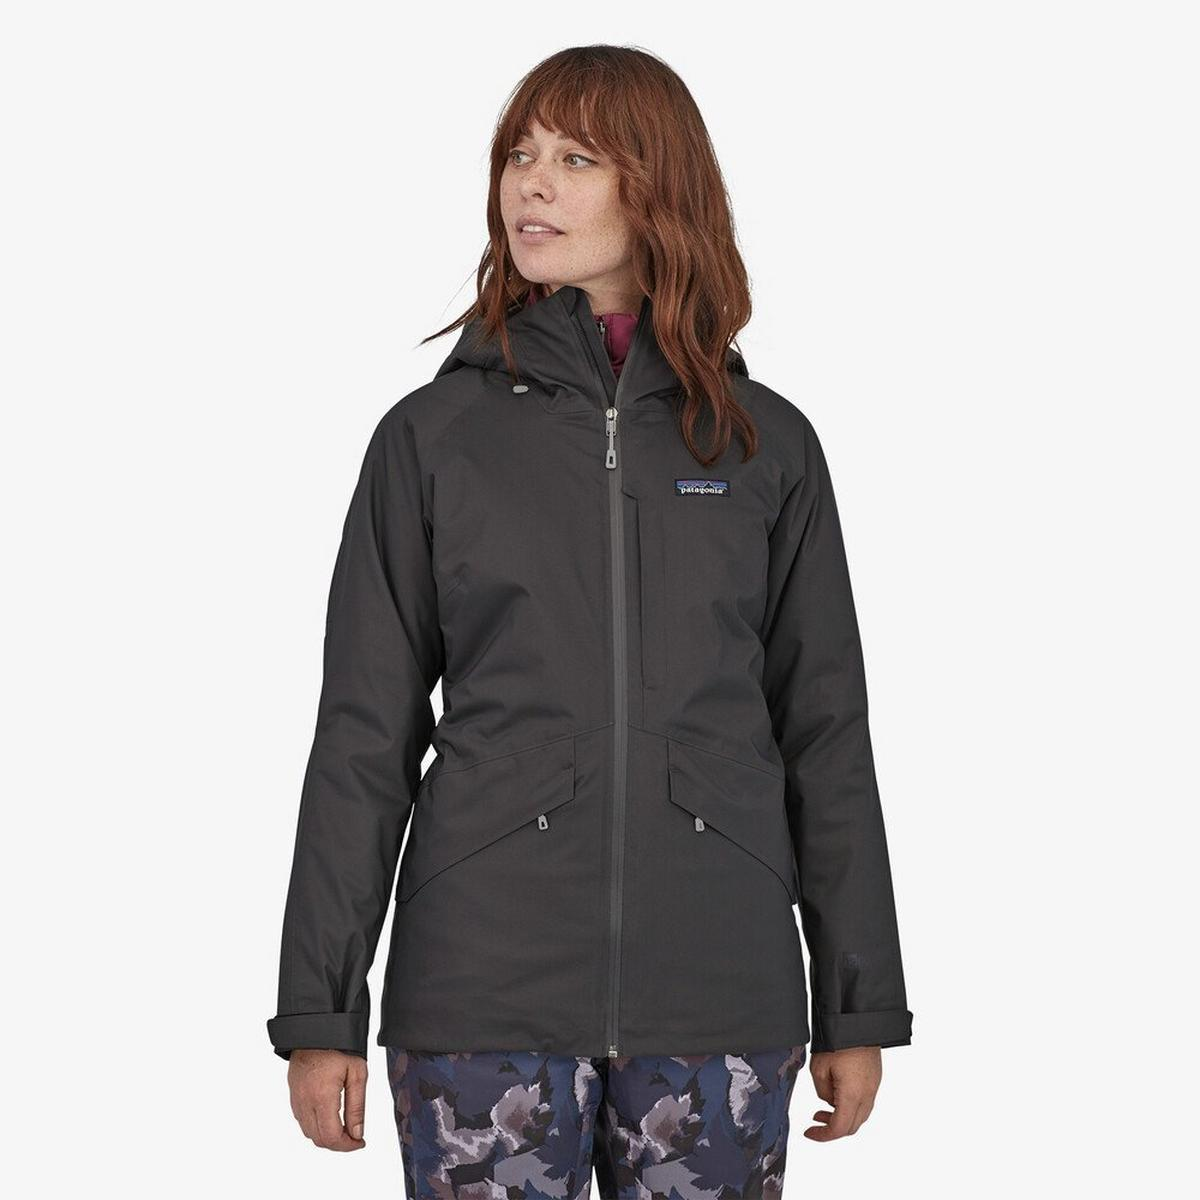 Patagonia Women's Insulated Snowbelle Jacket - Catalan Coral